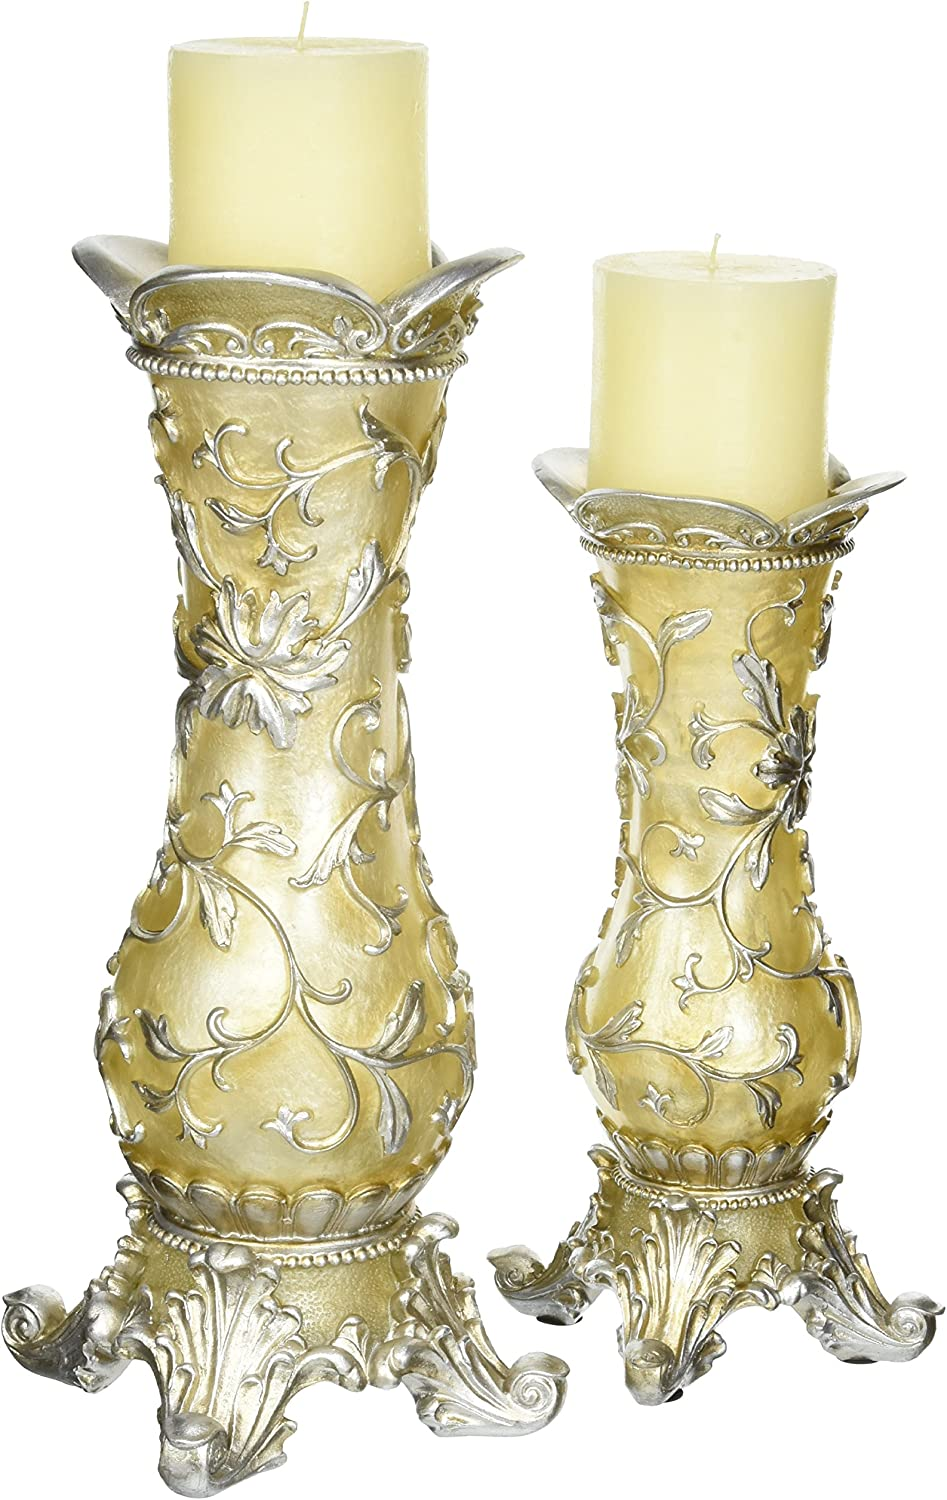 OK Lighting Candle Ultra-Cheap All stores are sold Deals Set 14.0